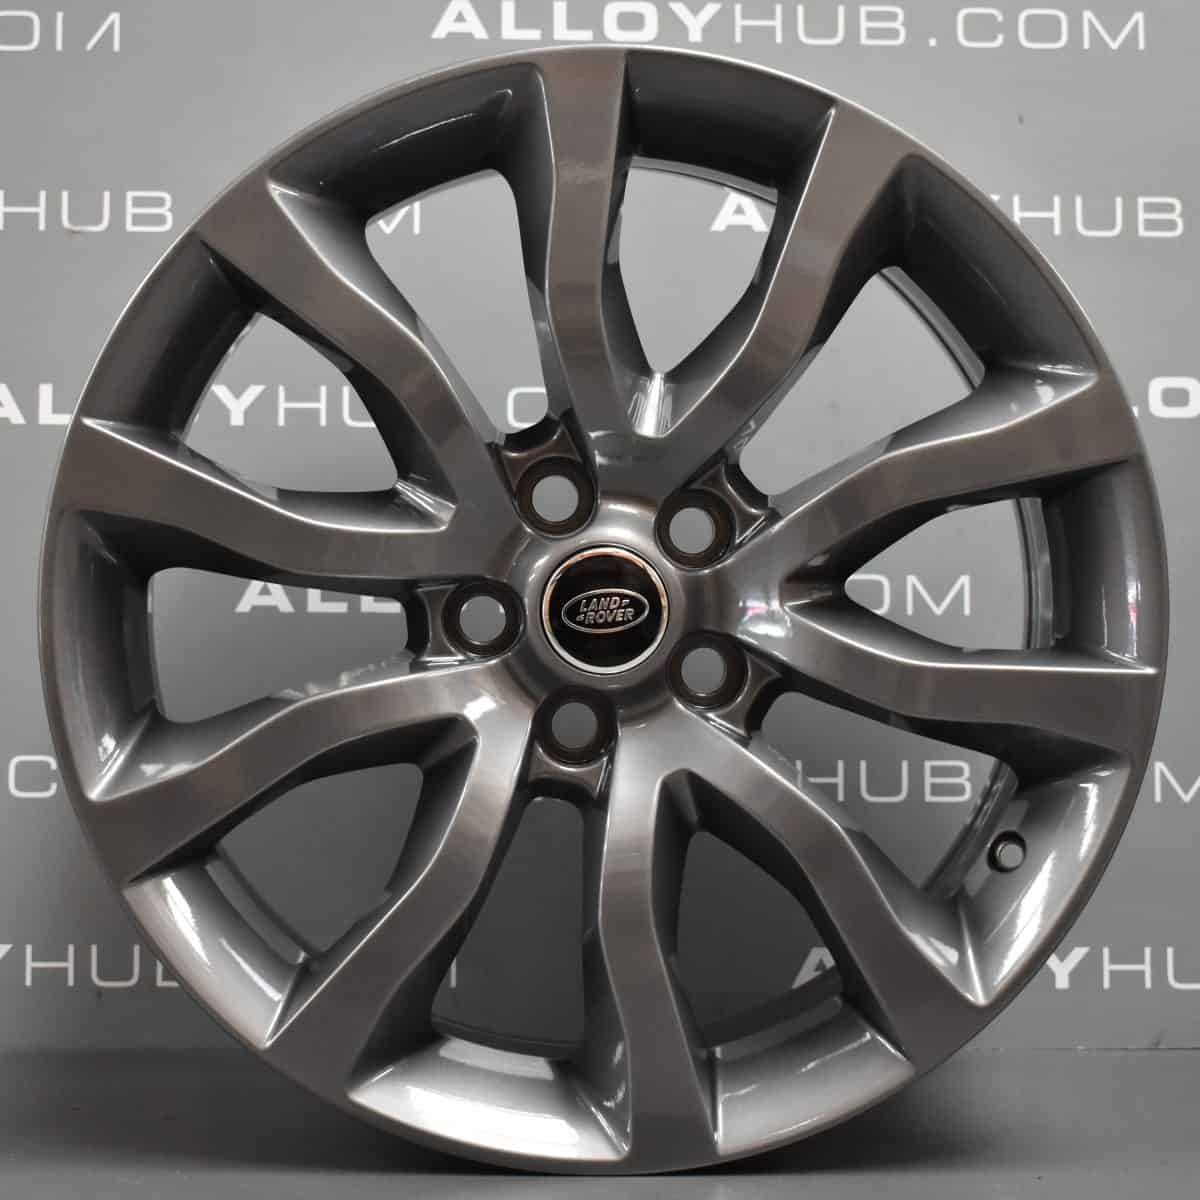 """Genuine Land Rover Range Rover Style 12 5020 20"""" inch 5 Split Spoke Alloy Wheels with Anthracite Grey Finish LR044848"""